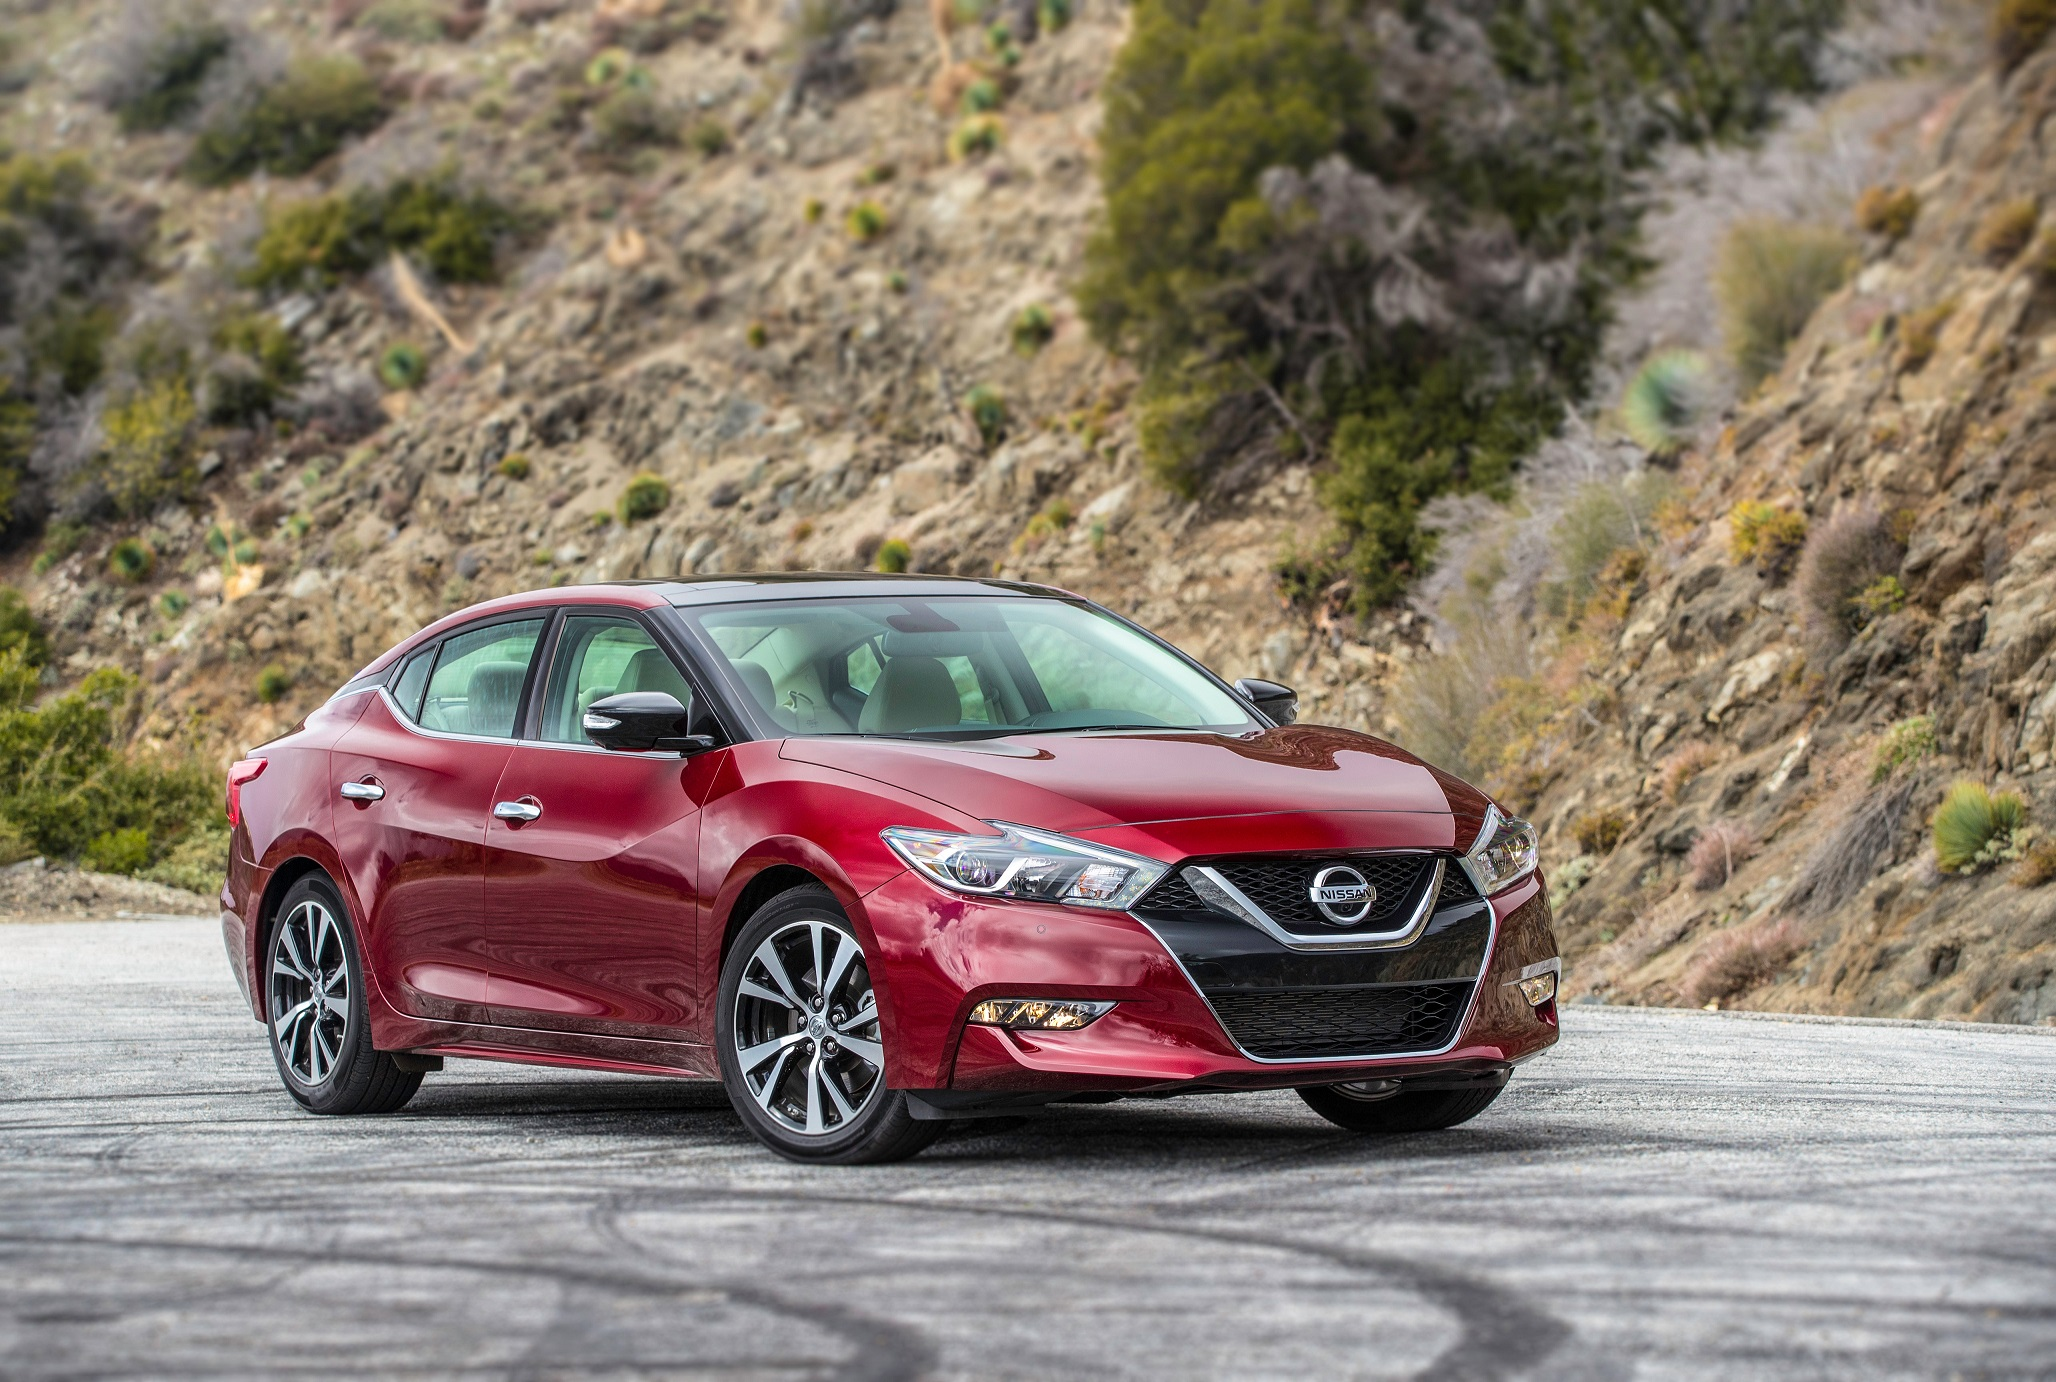 Nissan Becomes One of the Toppers in J.D. Power 2018 Initial Quality Study